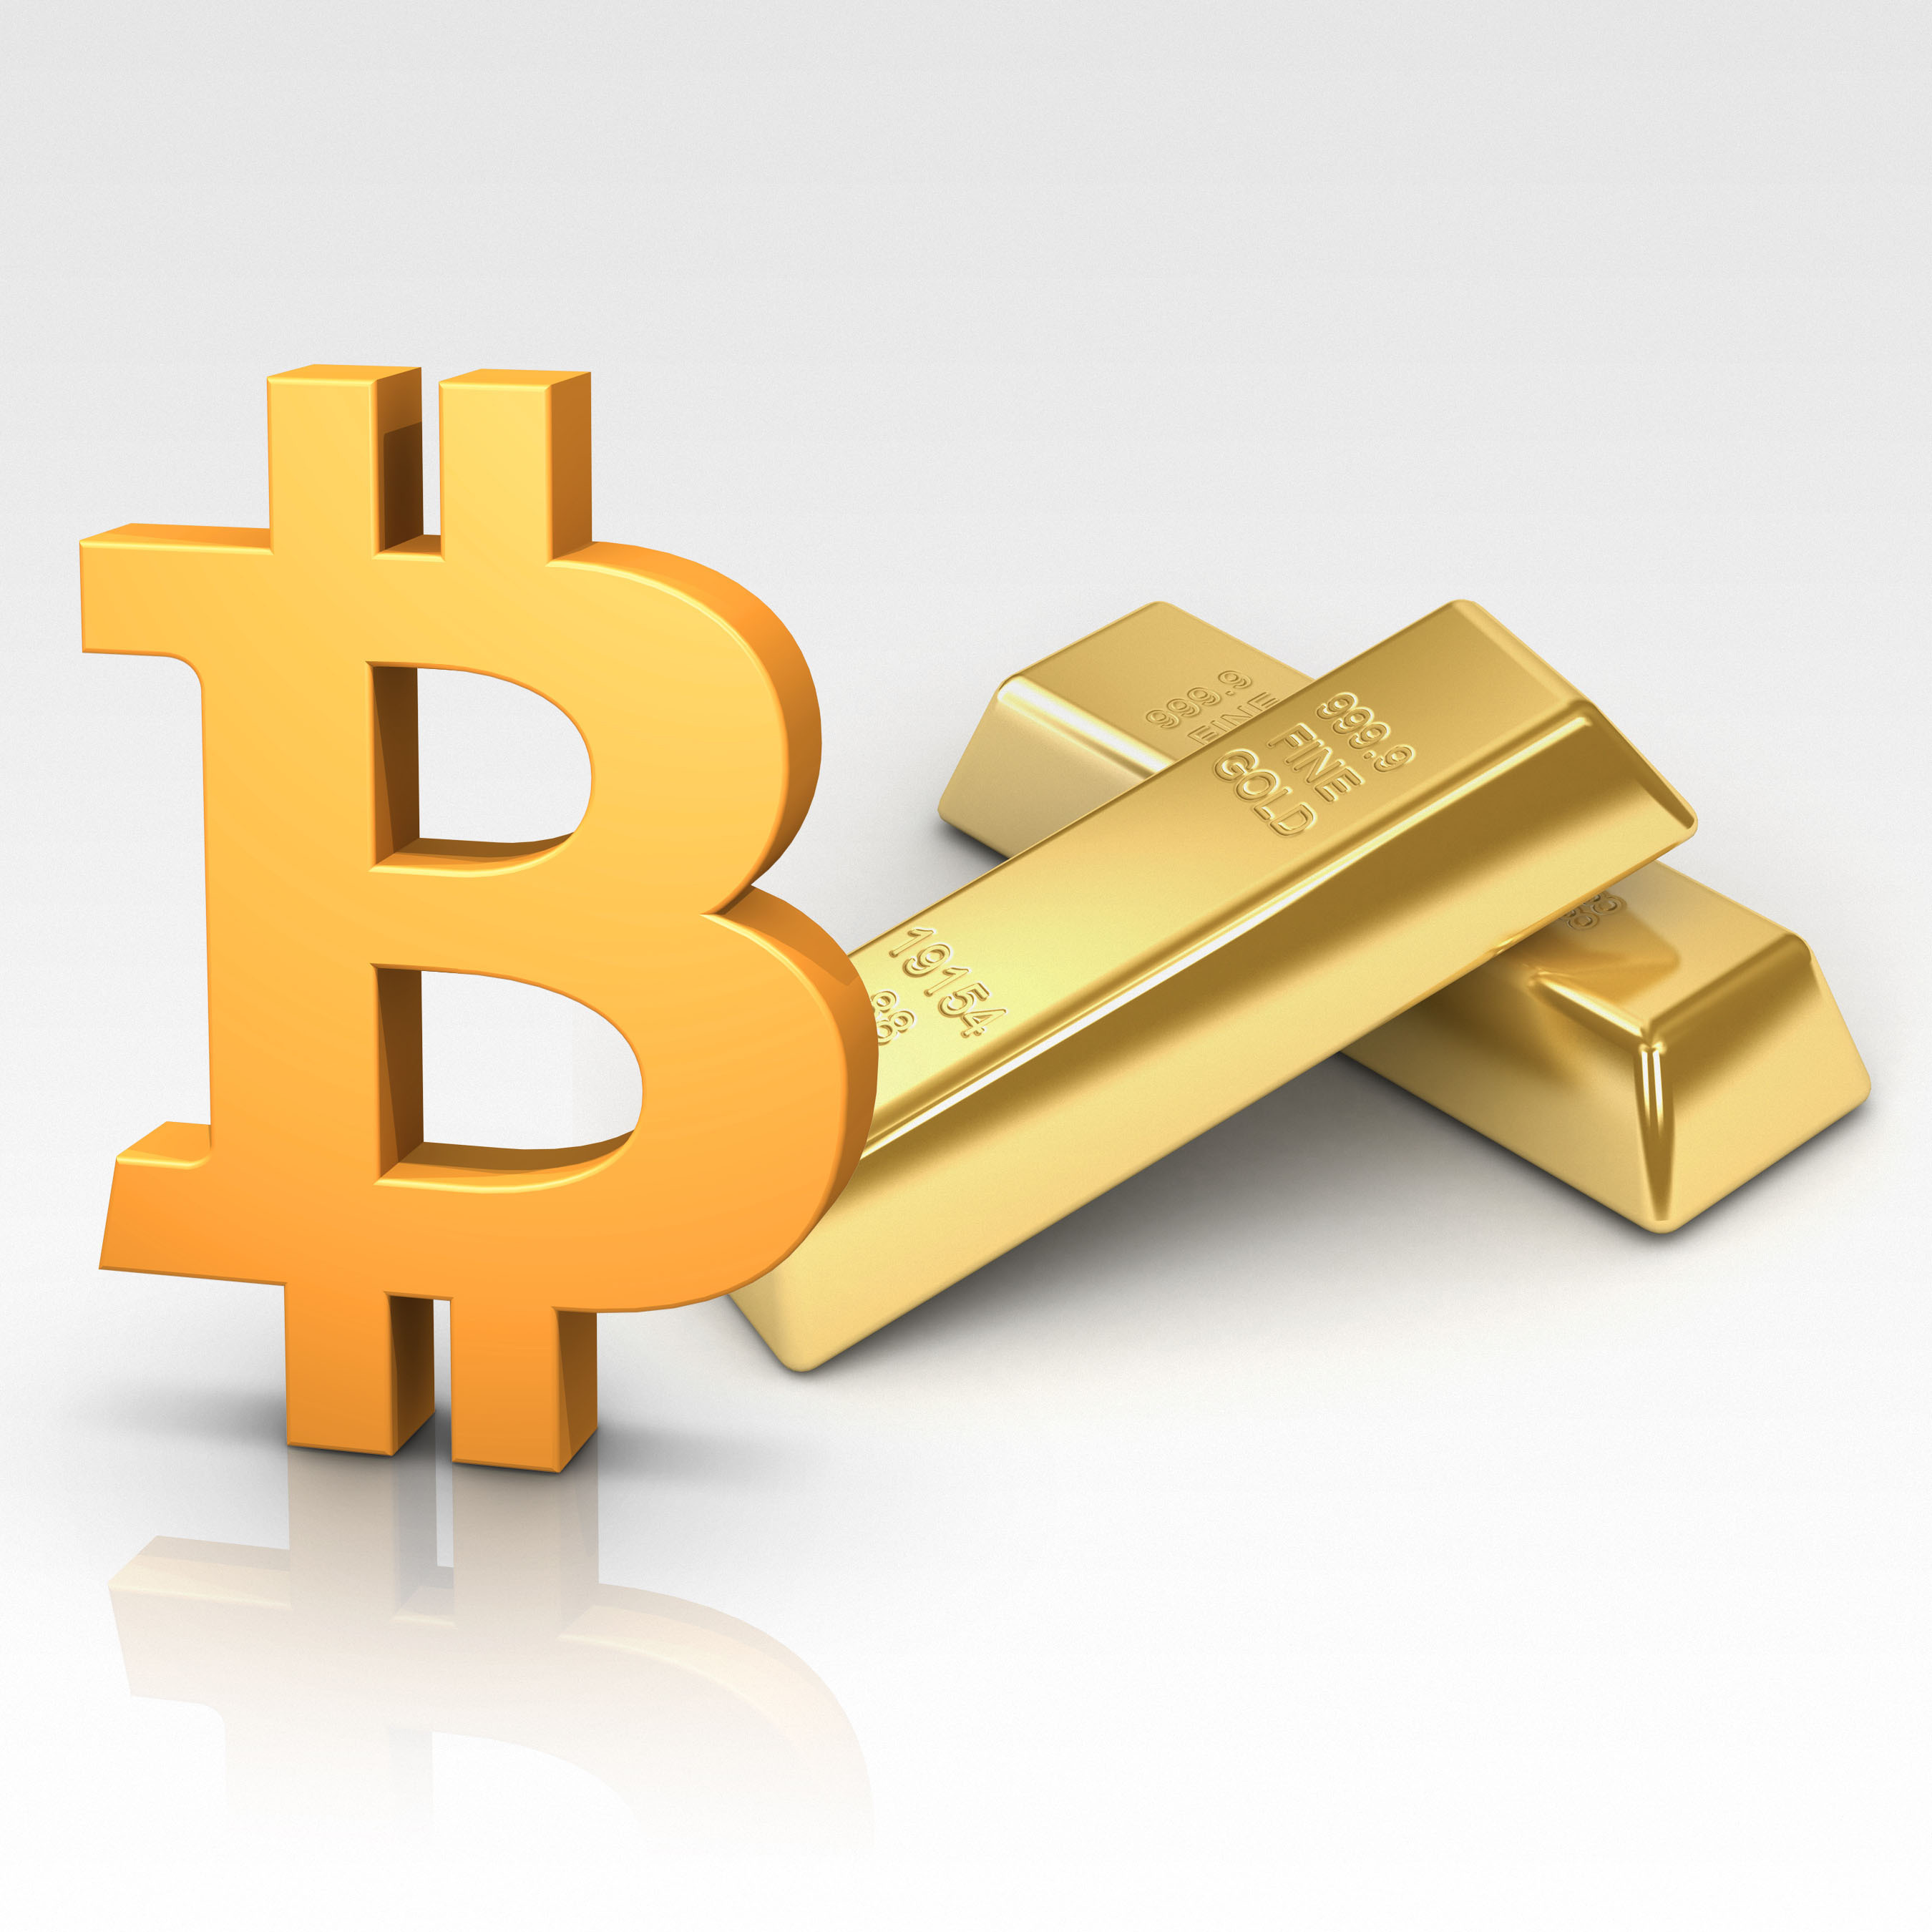 American Bullion Becomes First Nationally Listed U.S. Mint Dealer To Accept Bitcoin For Physical Gold And Silver Purchases. (PRNewsFoto/American Bullion) (PRNewsFoto/AMERICAN BULLION)